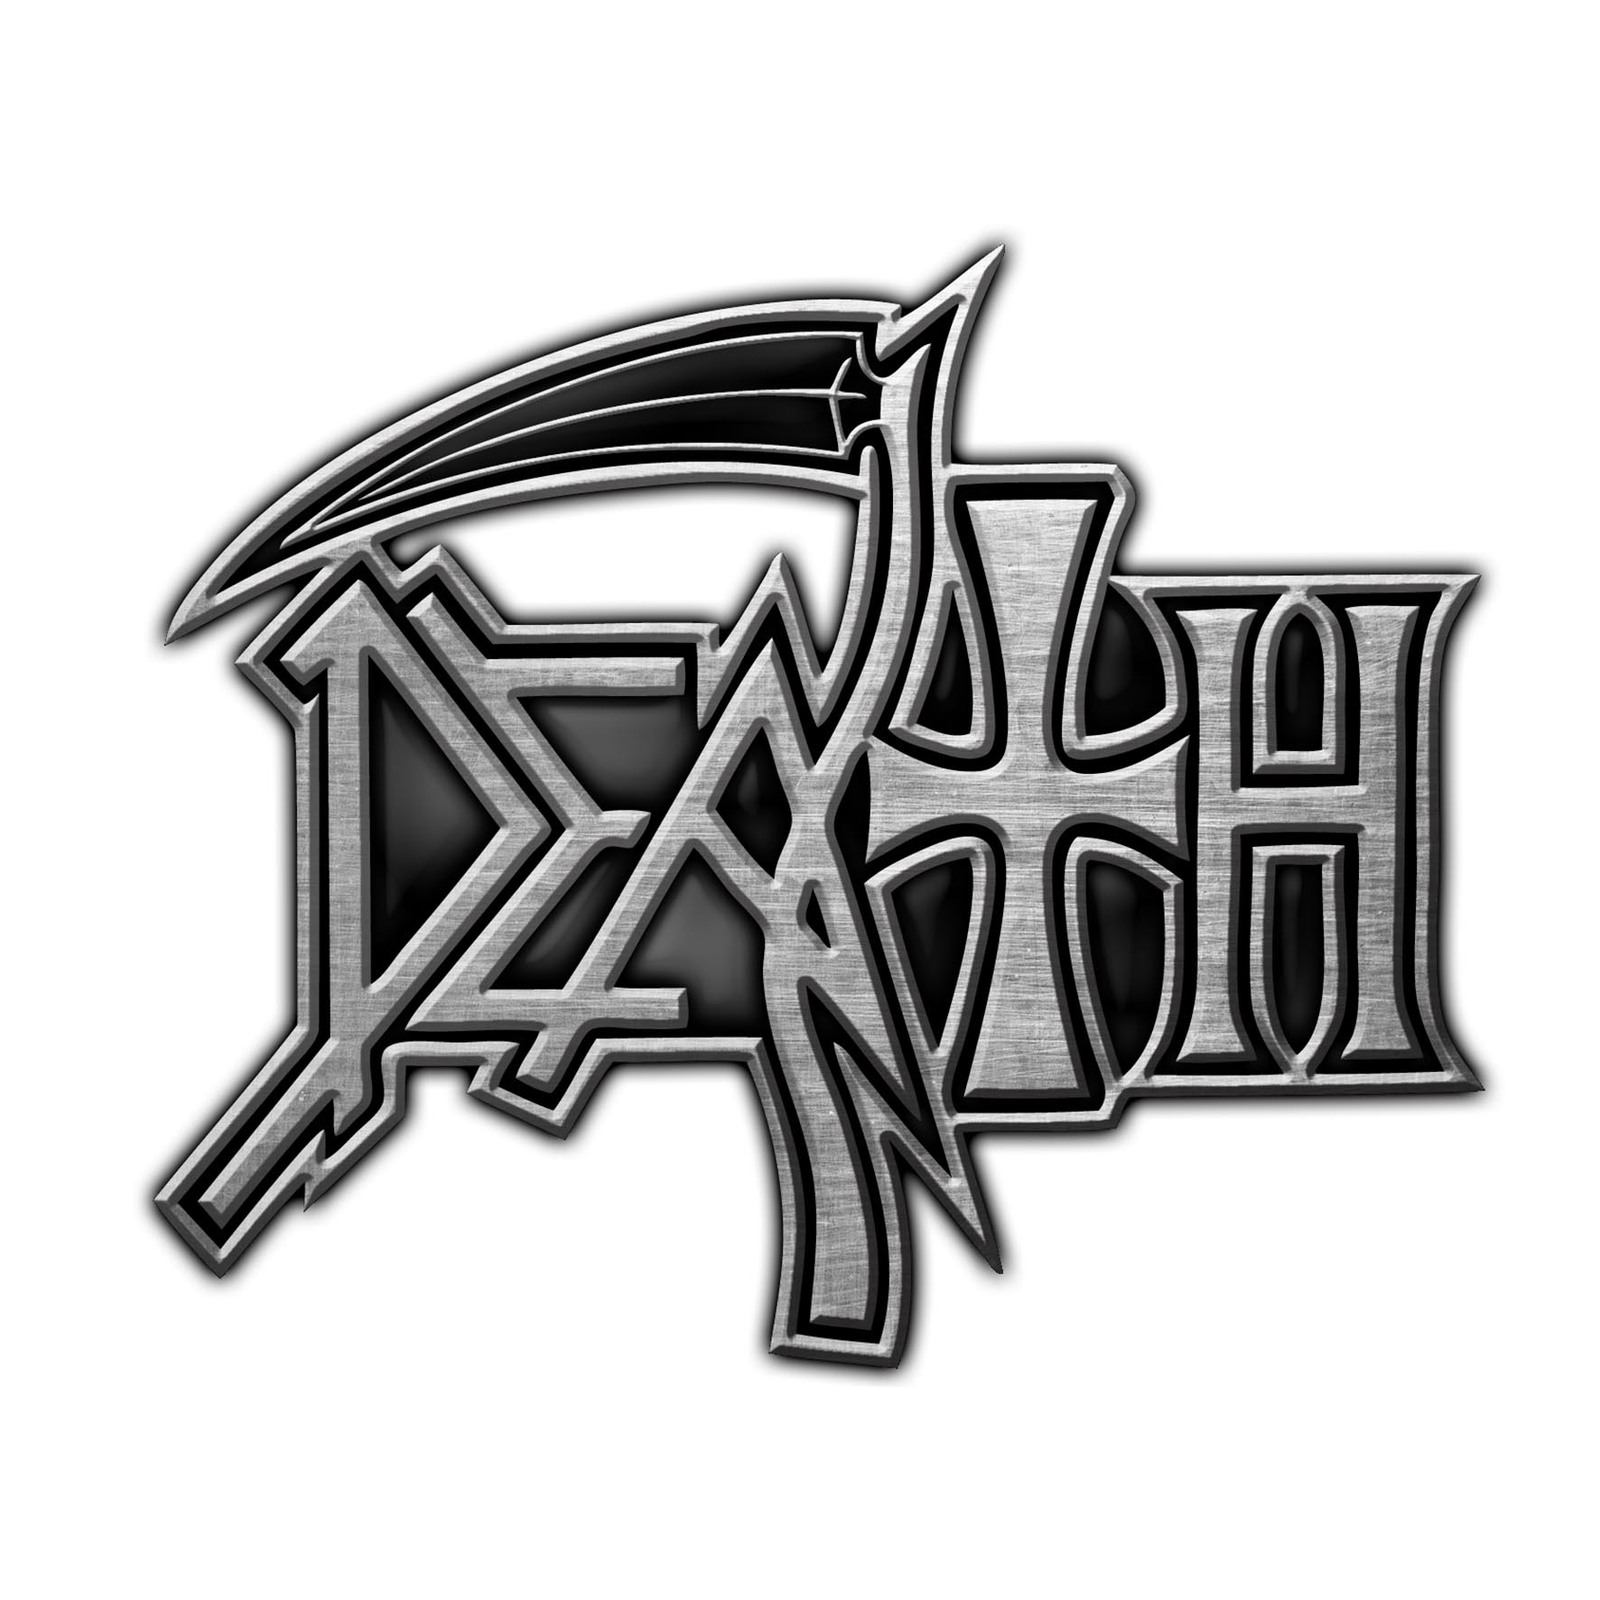 Details about Death Logo Metal Pin Button Badge Official Metal Band Merch.